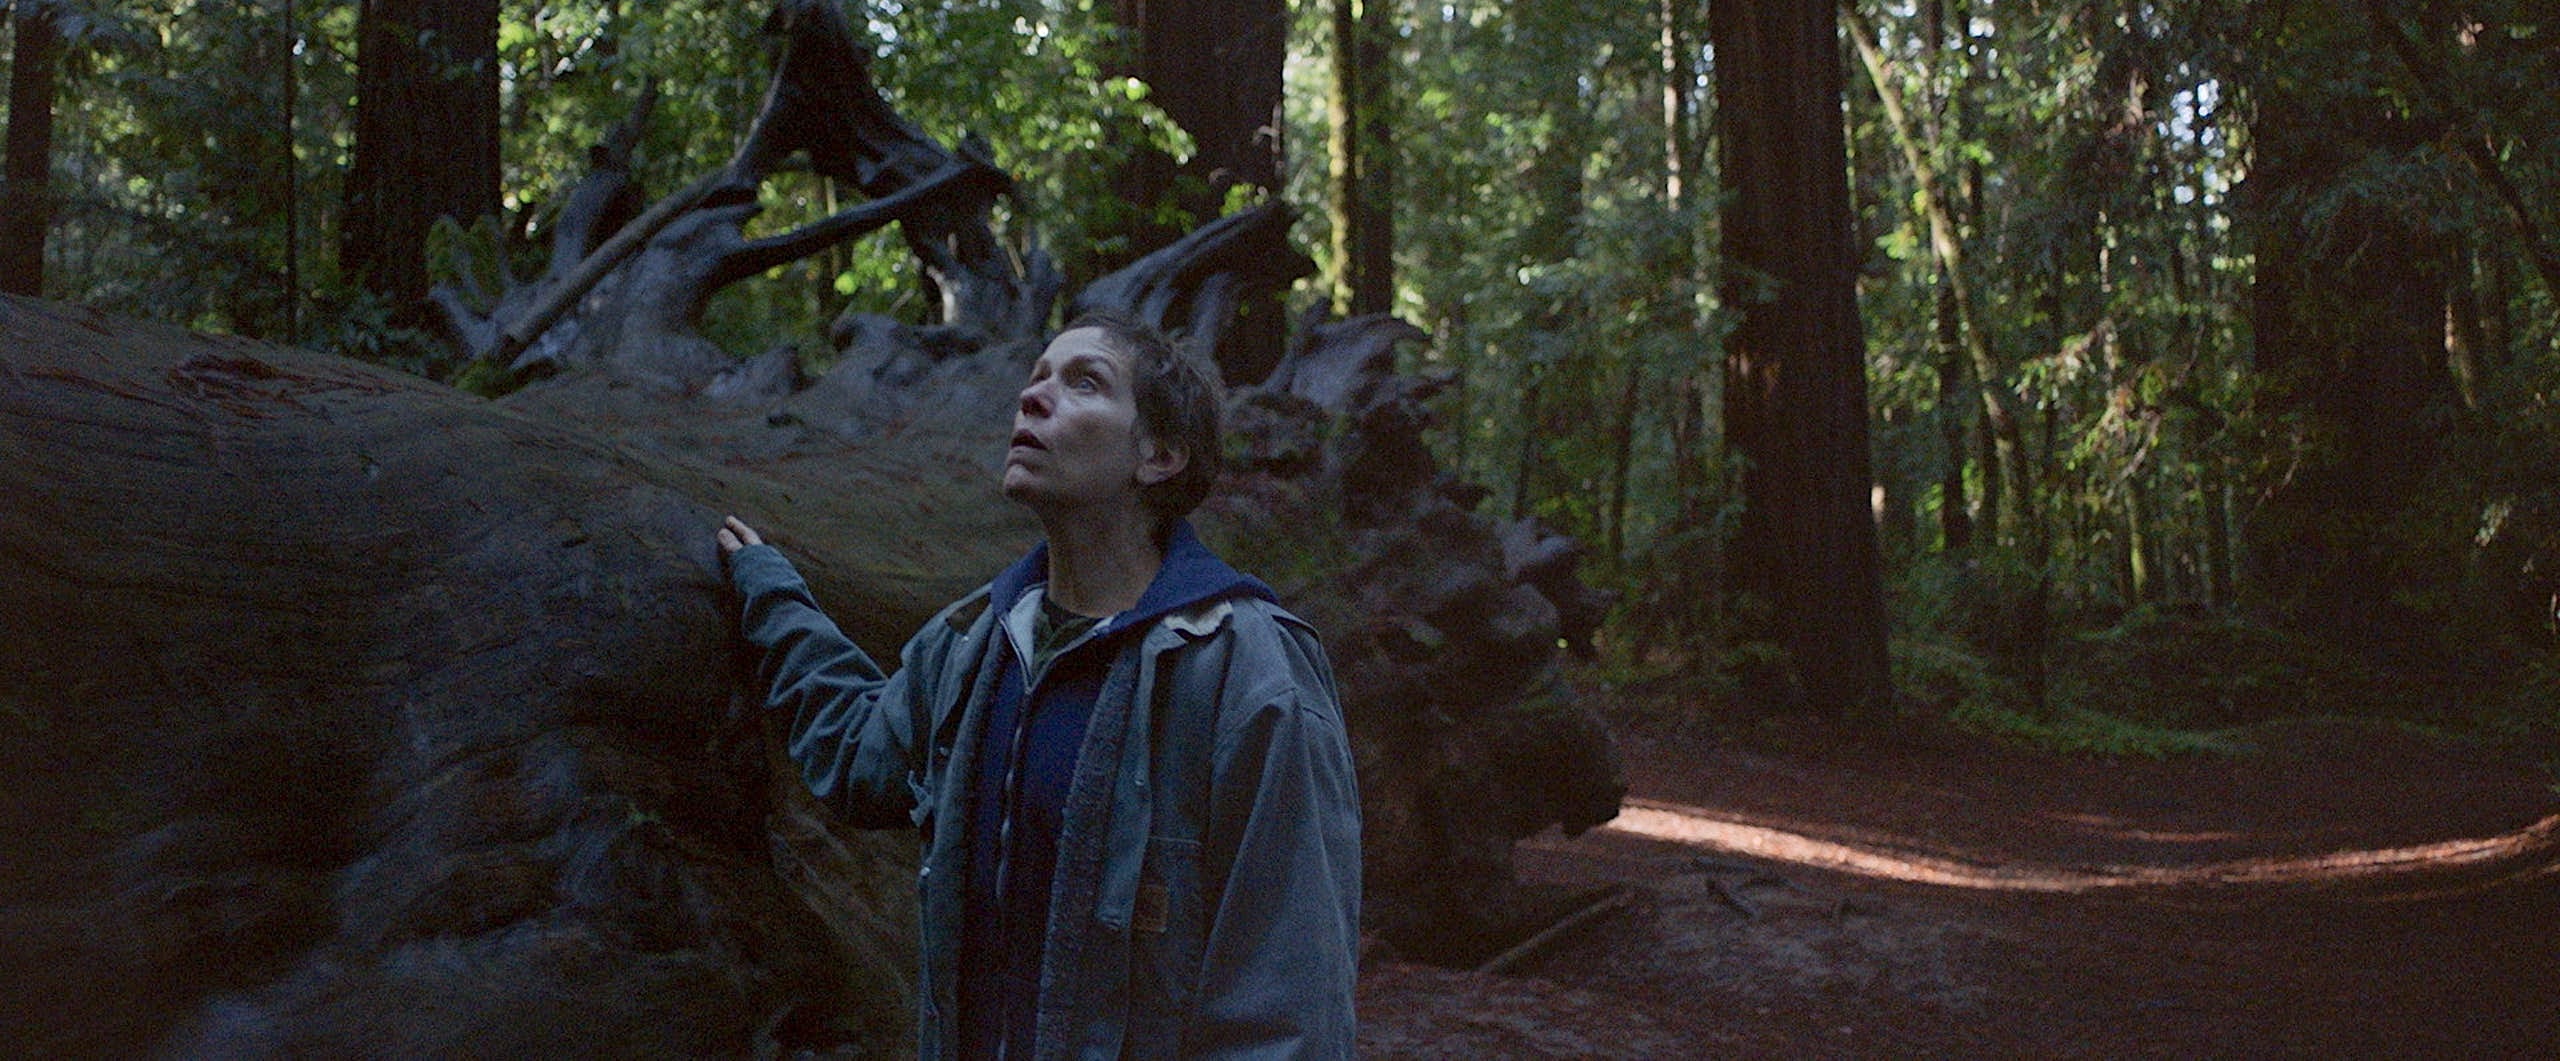 Frances McDormand stands by a gigantic fallen tree in the woods in Nomadland